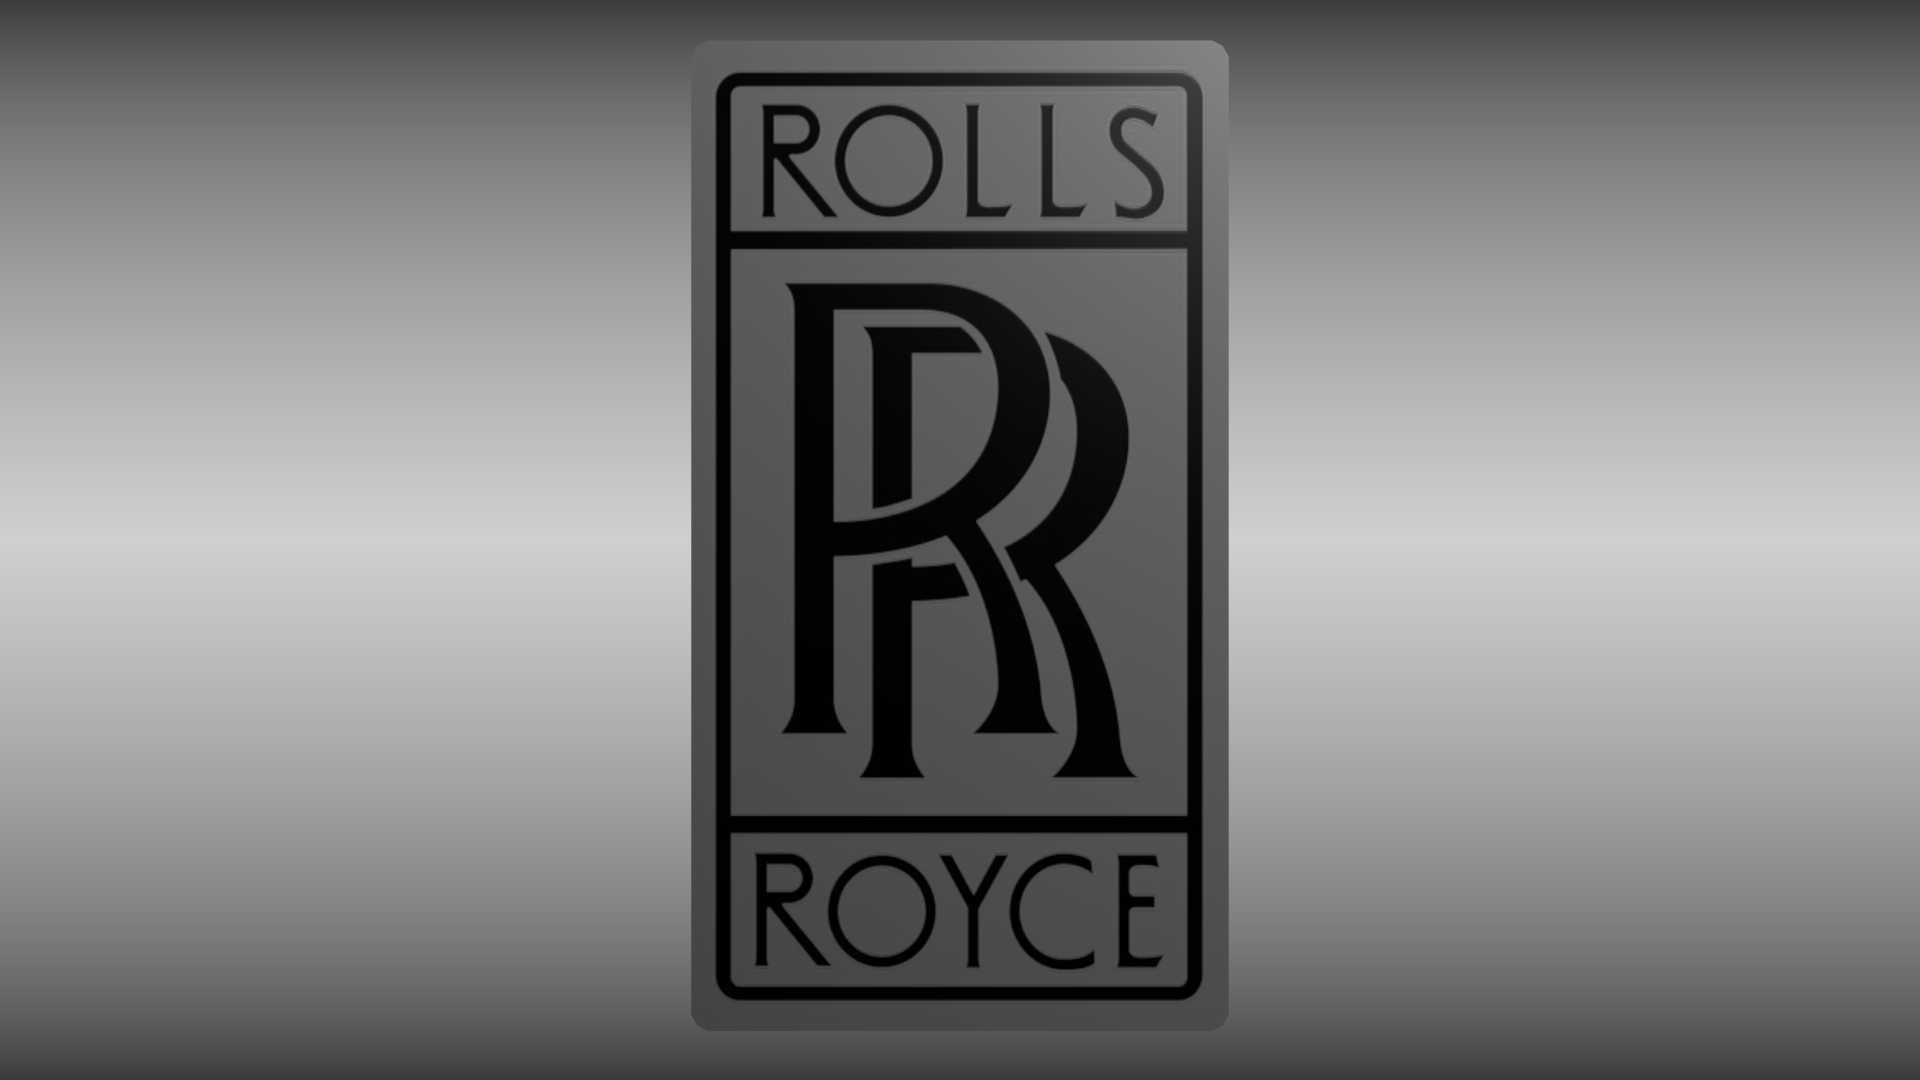 rolls royce logo free 3d model obj blend. Black Bedroom Furniture Sets. Home Design Ideas